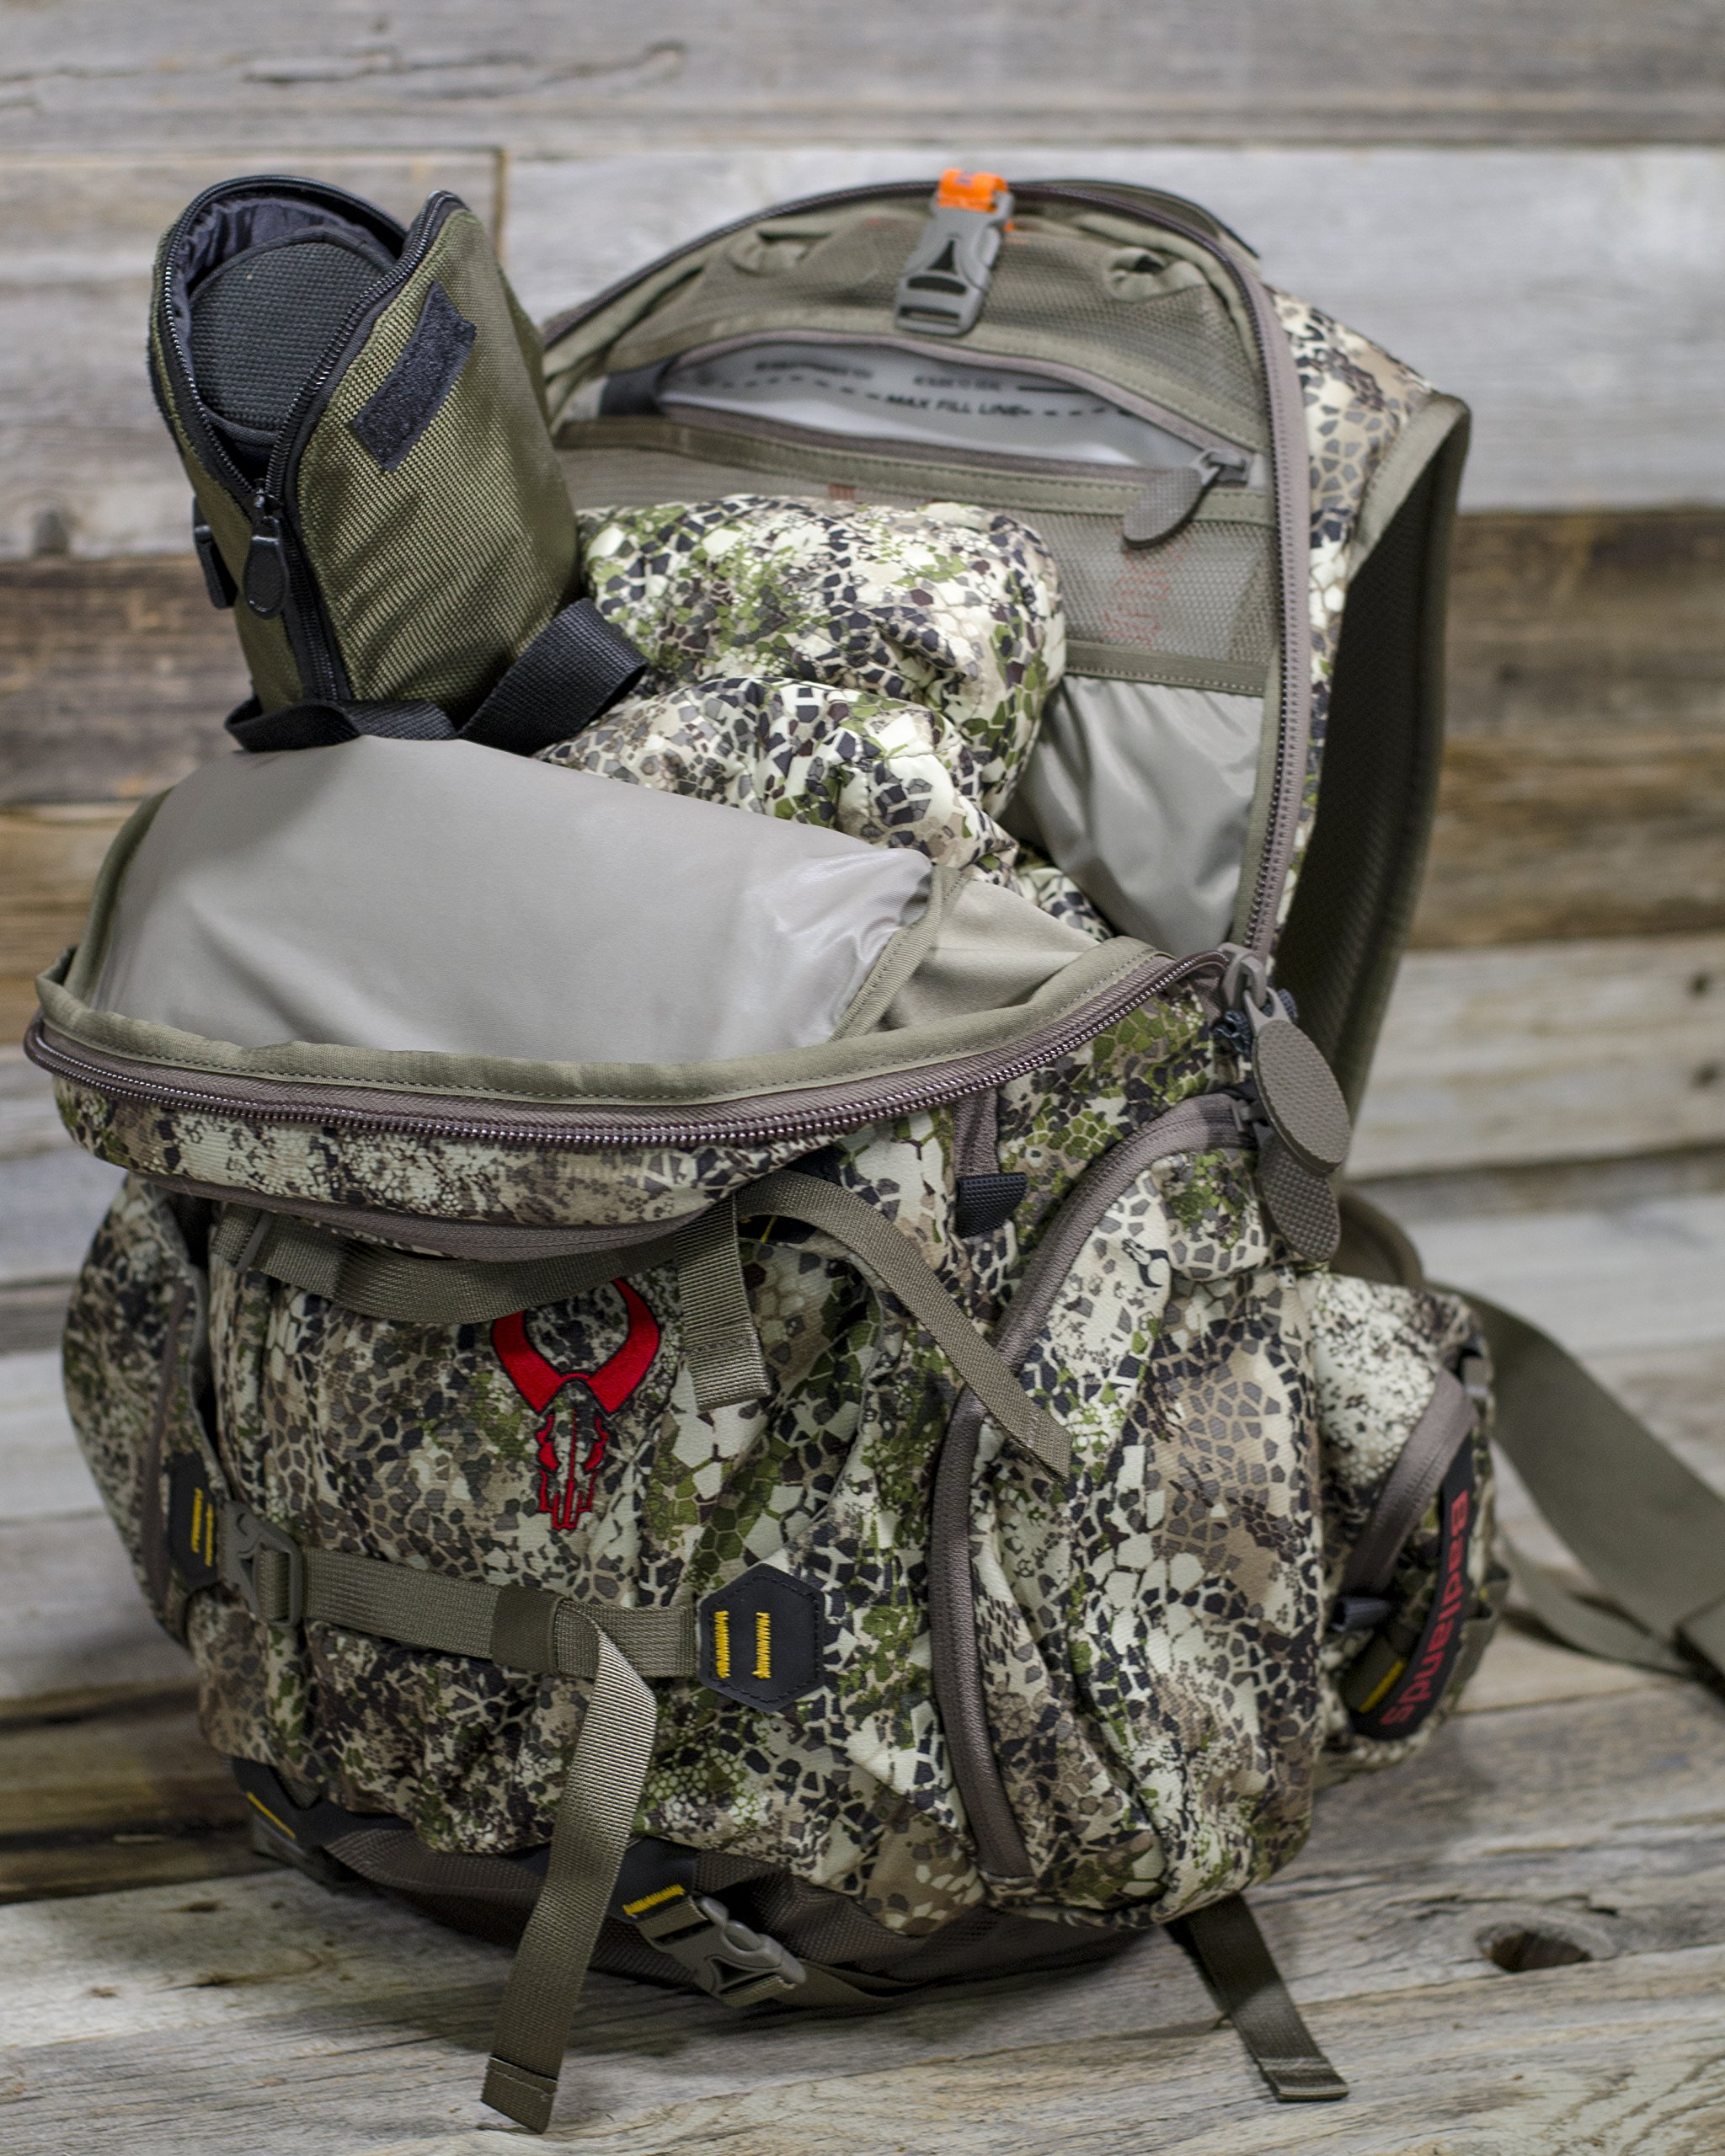 Badlands Superday Camouflage Hunting Backpack - Bow, Rifle, and Pistol Compatible, Approach Camo by Badlands (Image #5)